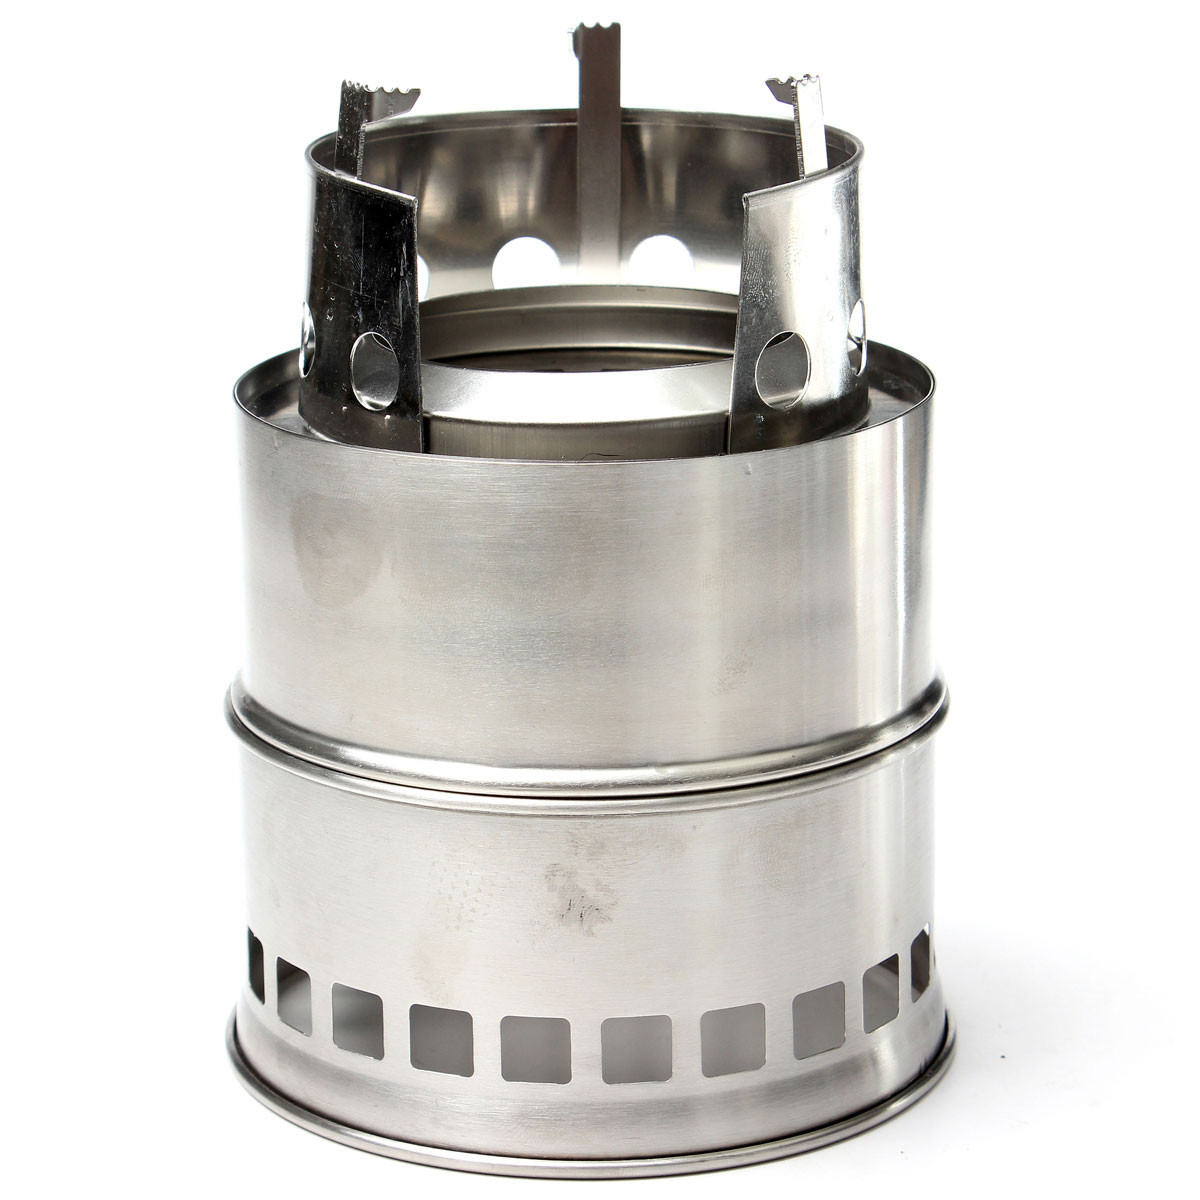 Outdoor Wood Coal Burning Stove Backpacking Portable Survival Camping Stove  Multi Fuel Burning Cook Stove Camping - Popular Wood Cook Stove Manufacturers-Buy Cheap Wood Cook Stove